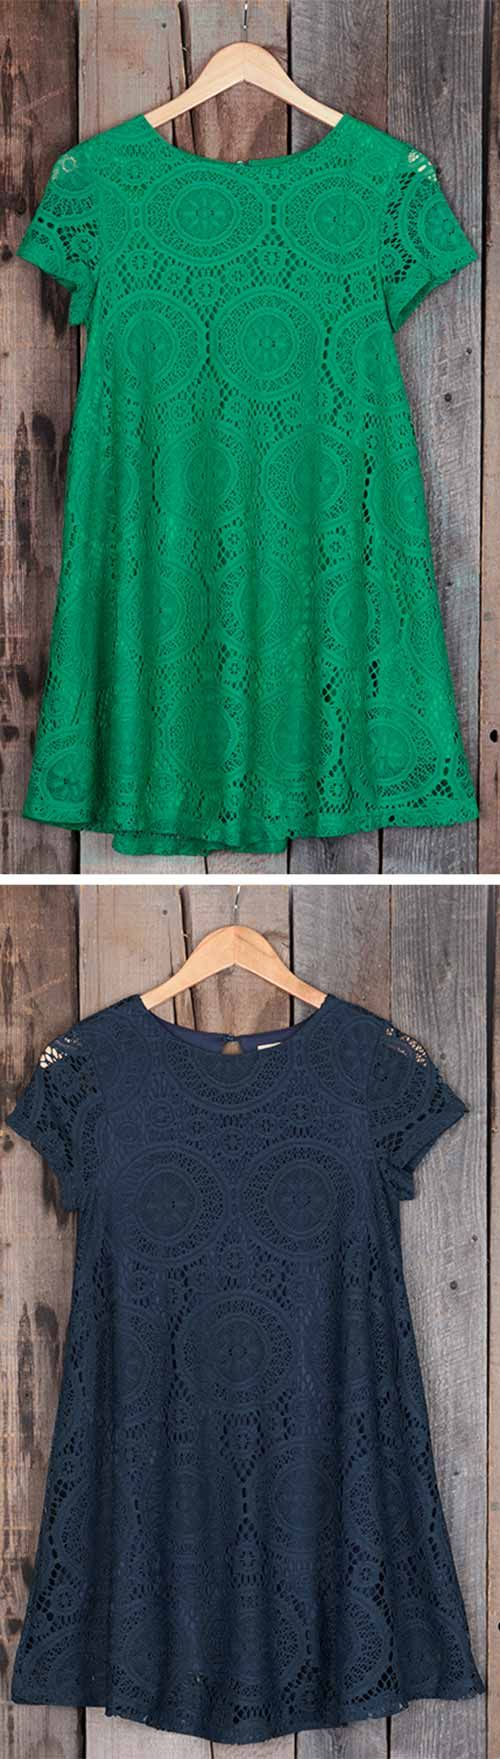 Women's wardrobes always lack an elegant dress.Beautiful lace makes the dress more elegant. Hollow design itself is a mystery. Hold on to it now~